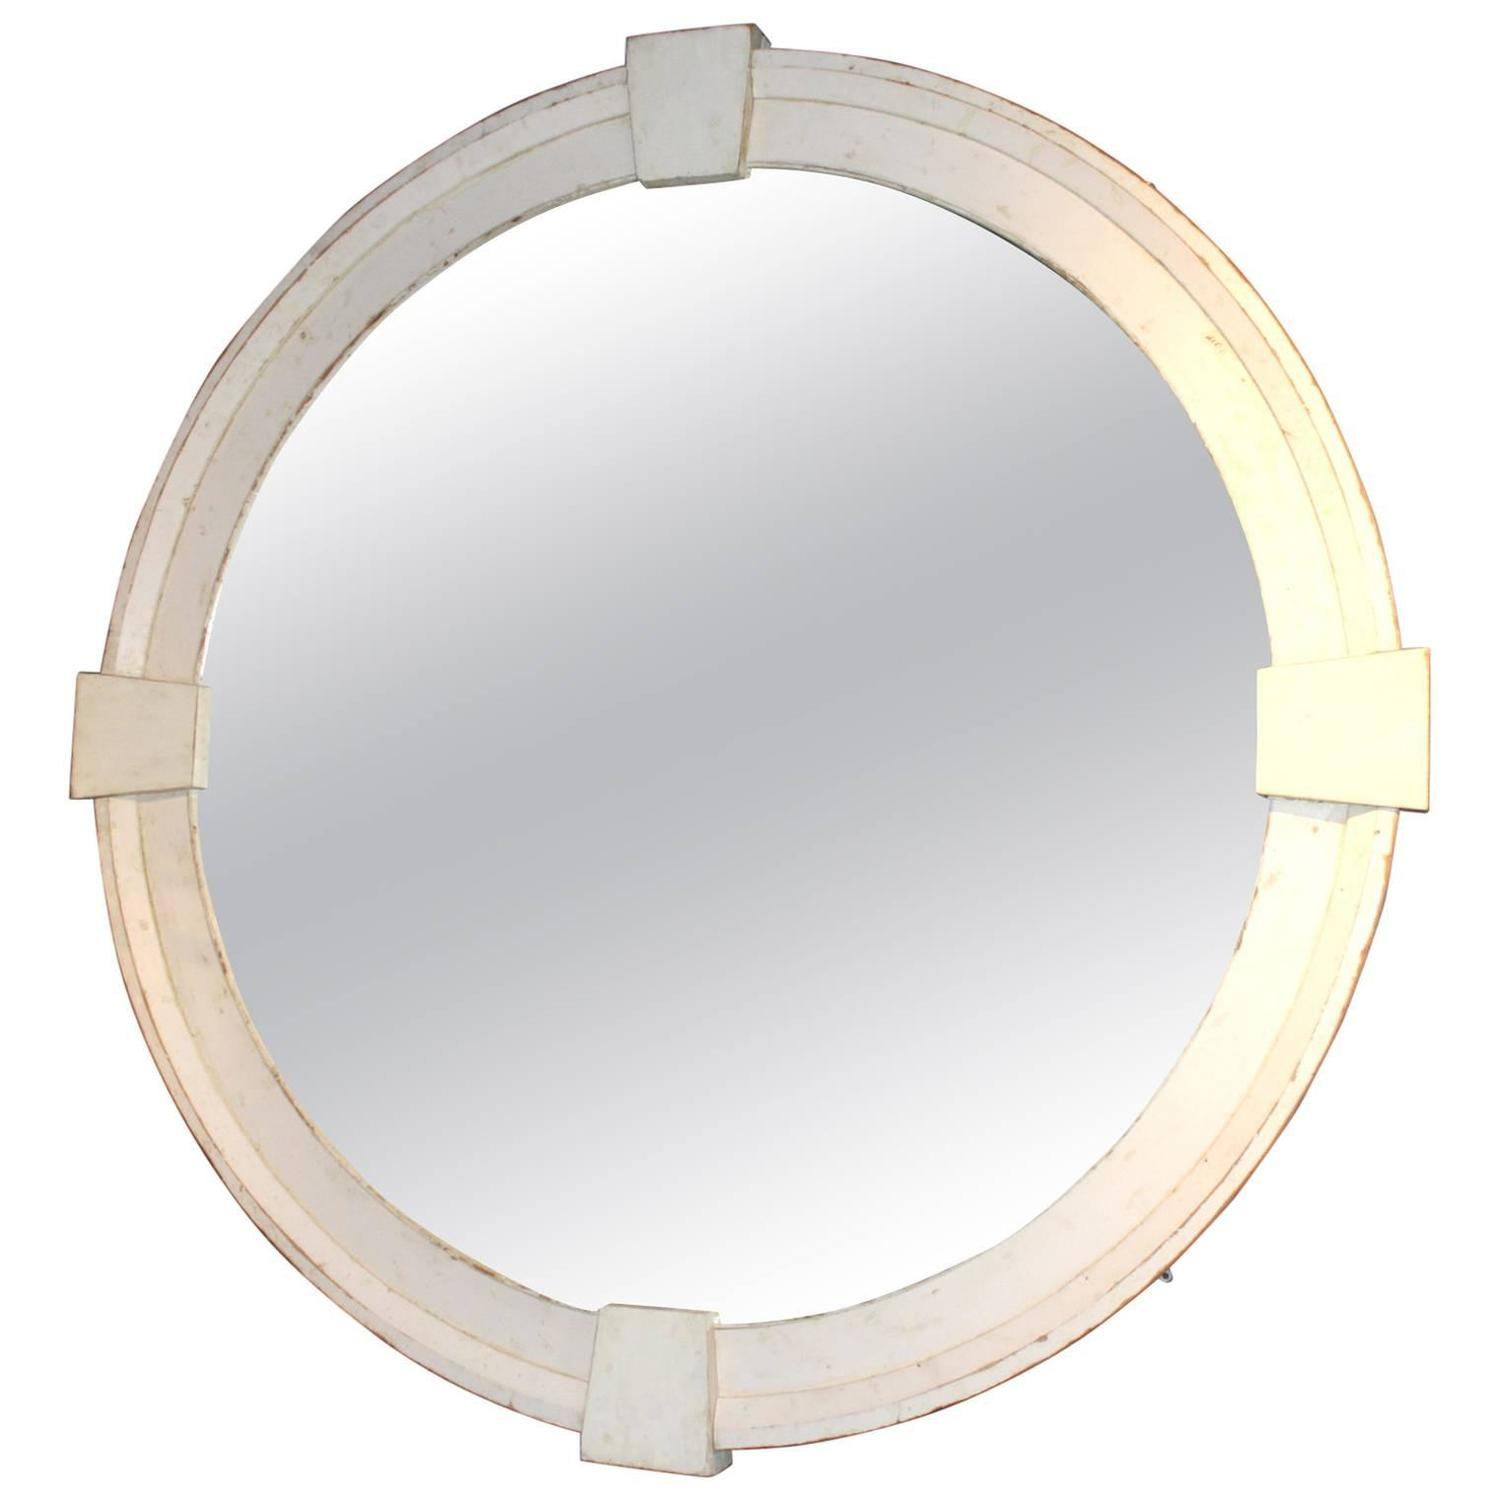 Monumental round wood framed mirror with architectural Round framed mirror